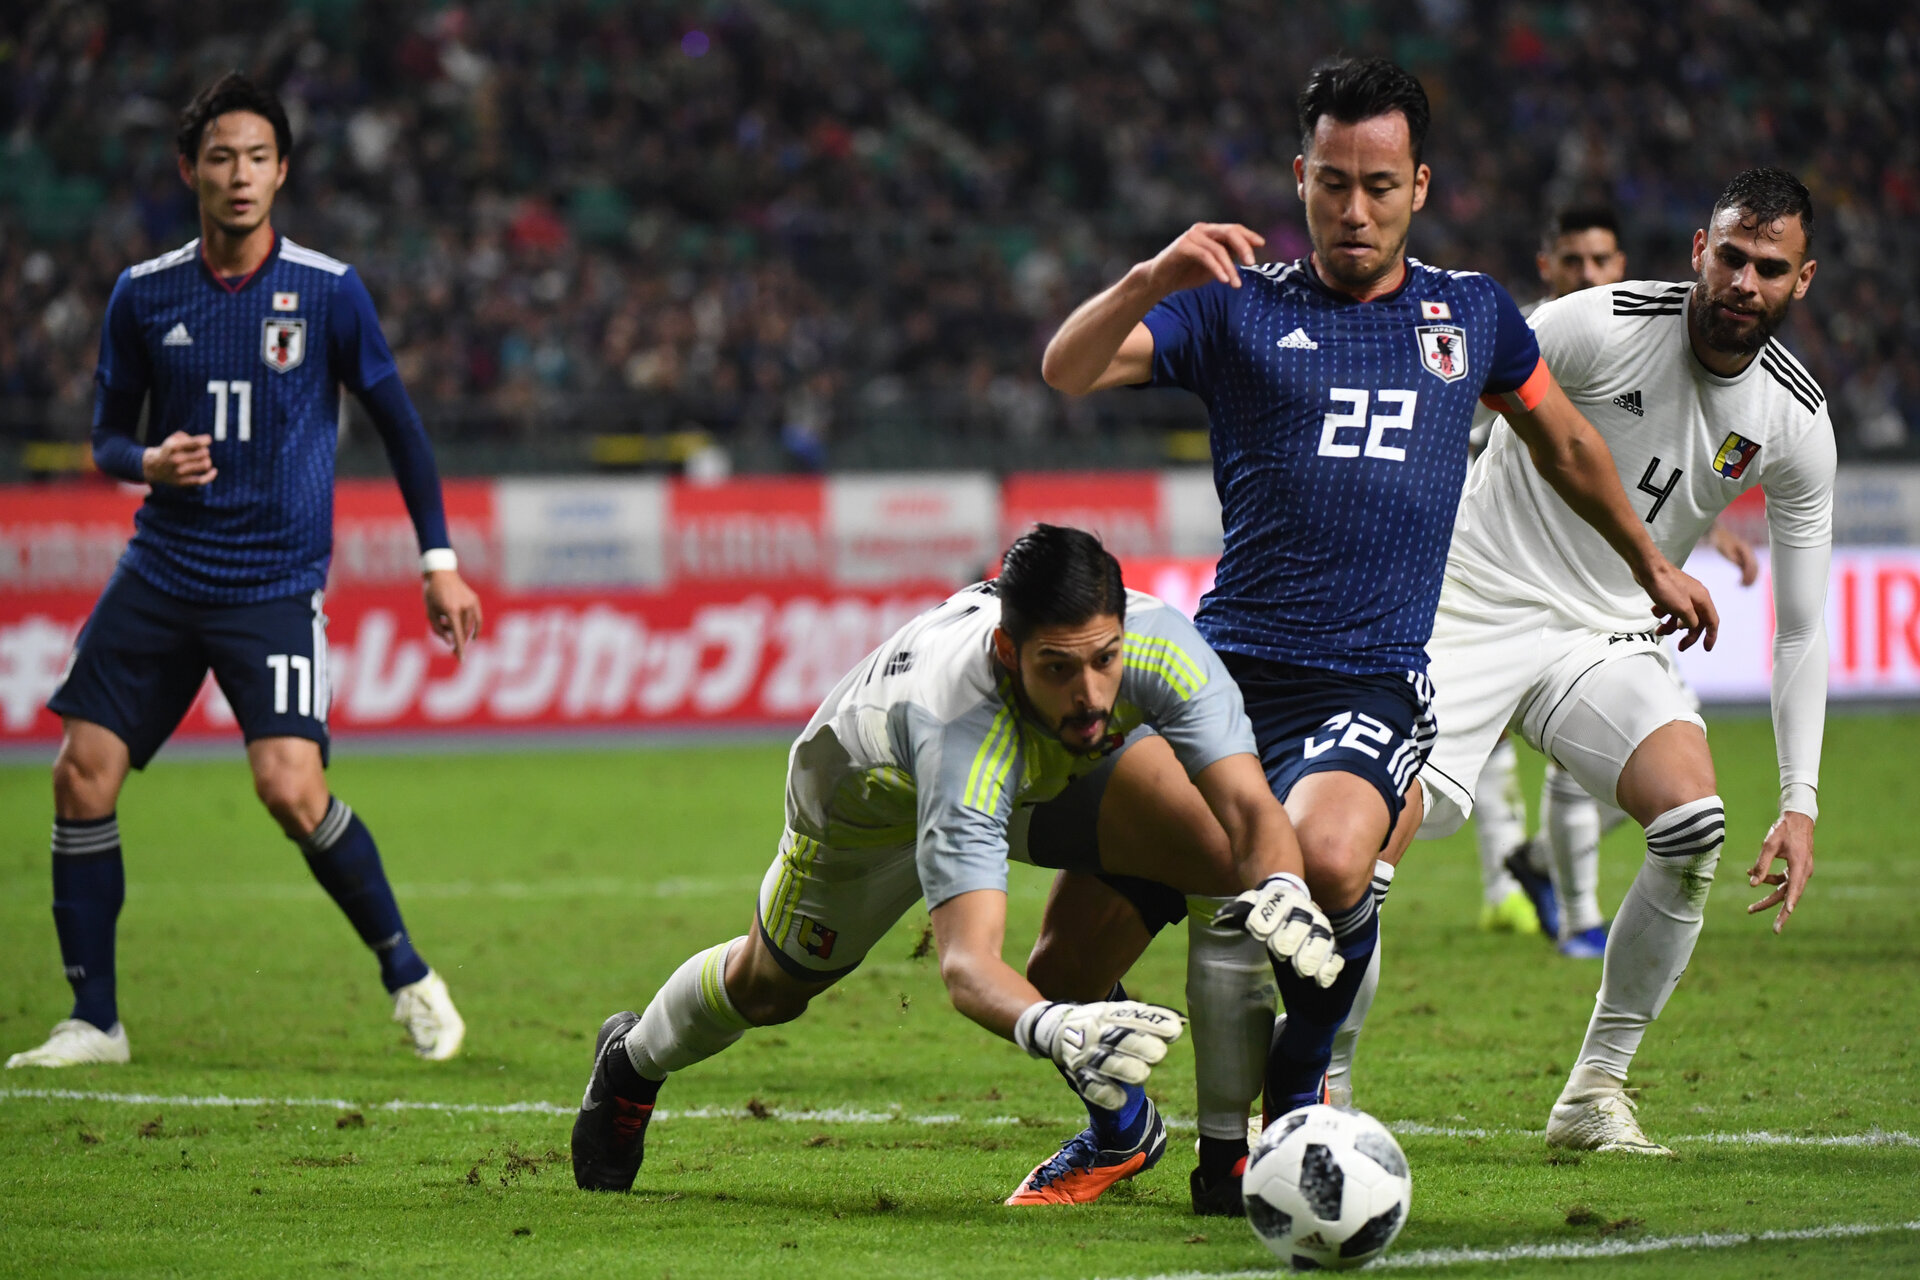 OITA, JAPAN - NOVEMBER 16: Maya Yoshida of Japan and Rafael Romo of Venezuela compete for the ball during the international friendly match between Japan and Venezuela at Oita Bank Dome on November 16, 2018 in Oita, Japan.  (Photo by Kaz Photography/Getty Images)